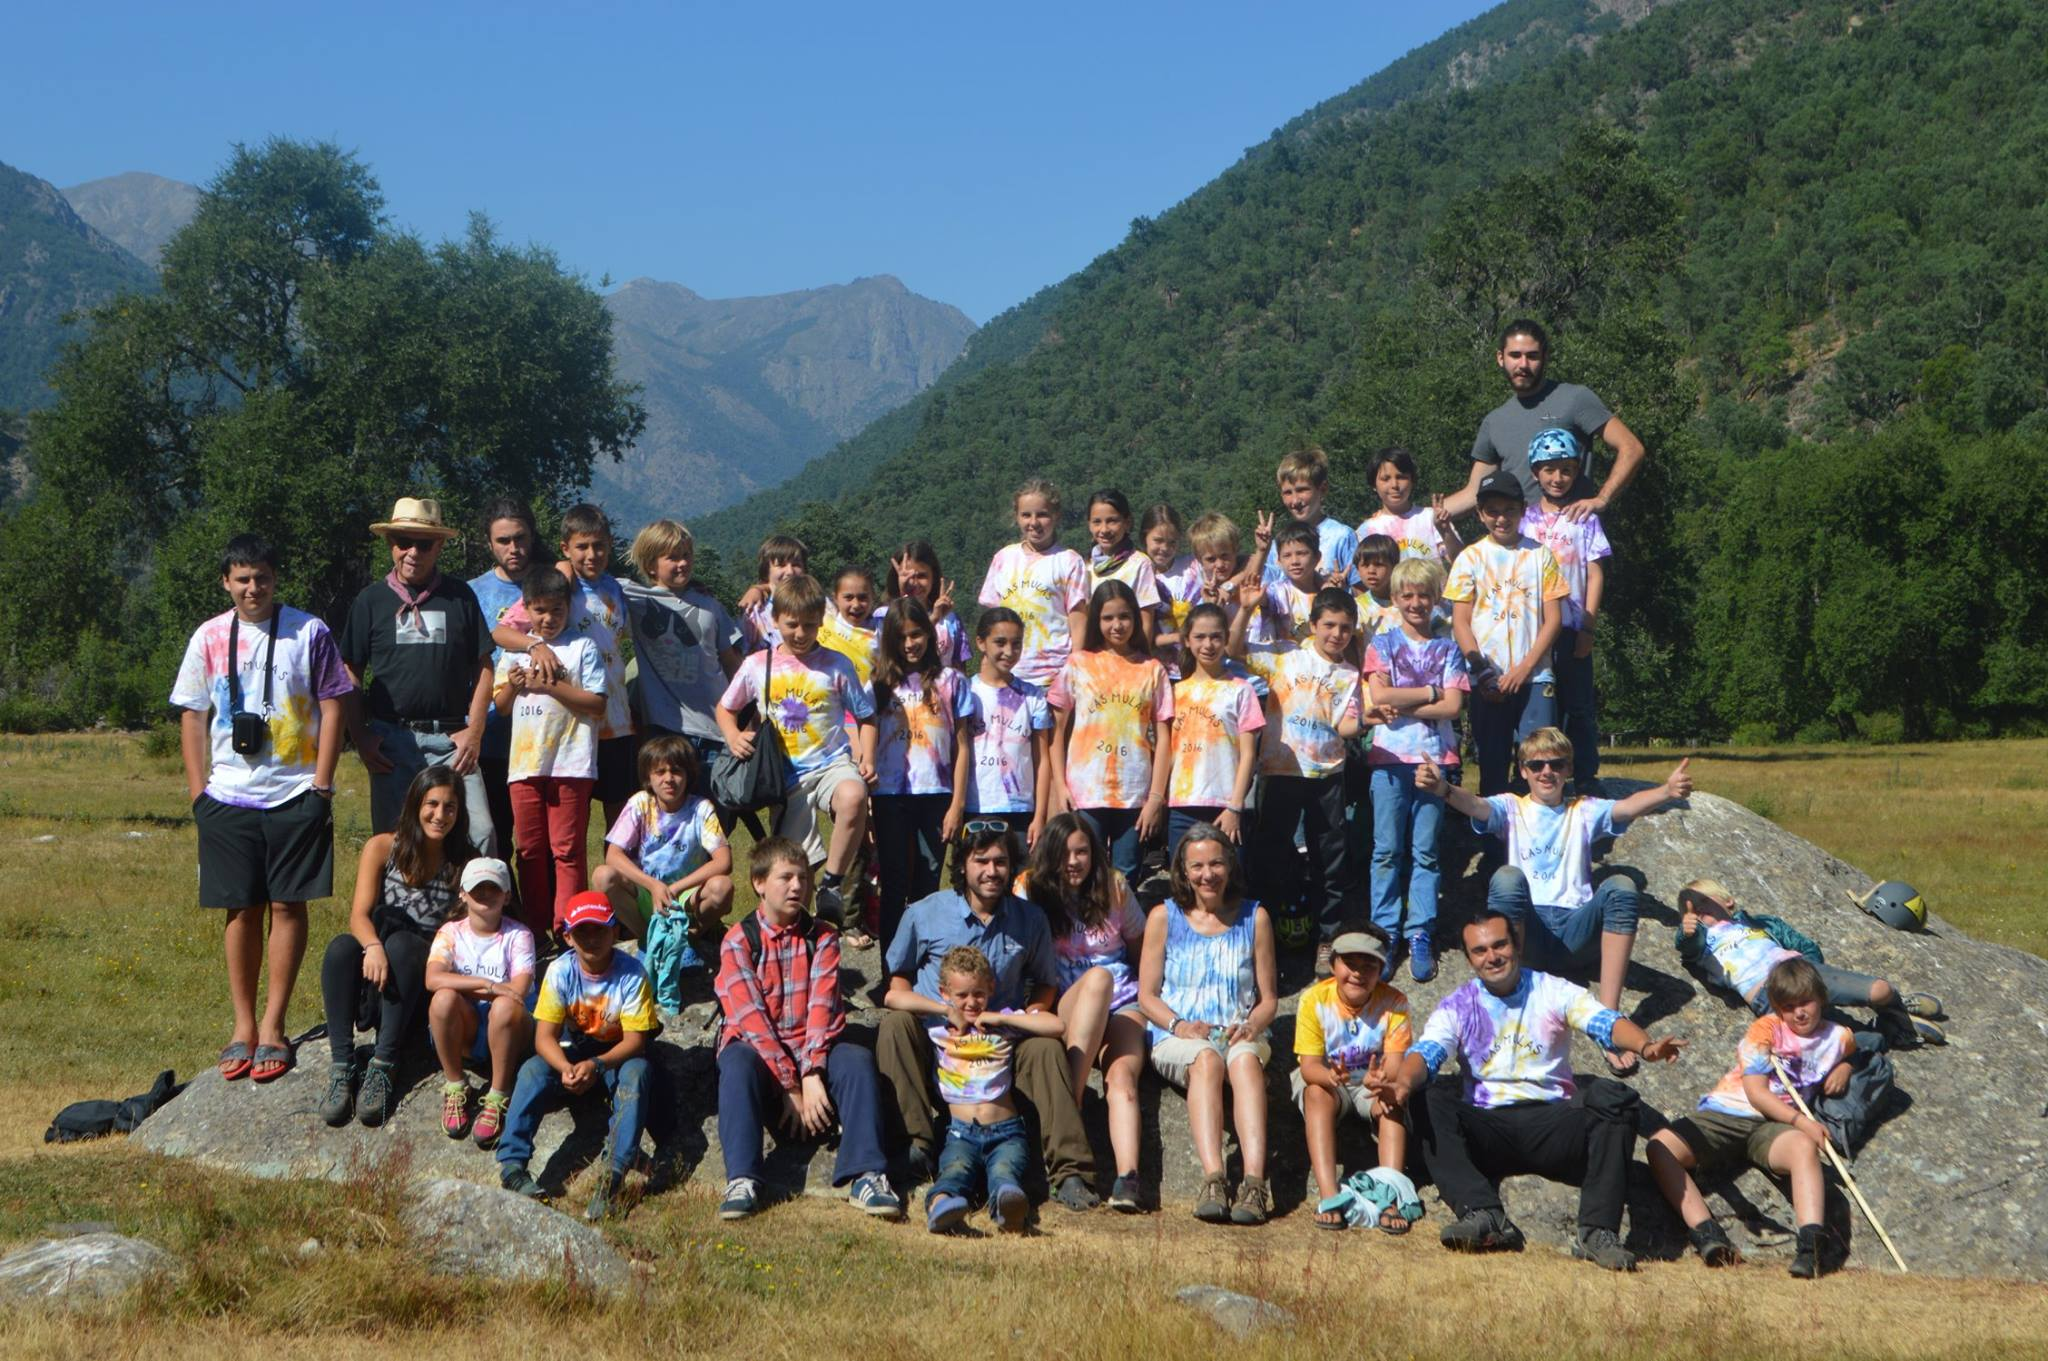 Group photo from Camp Las Mulas